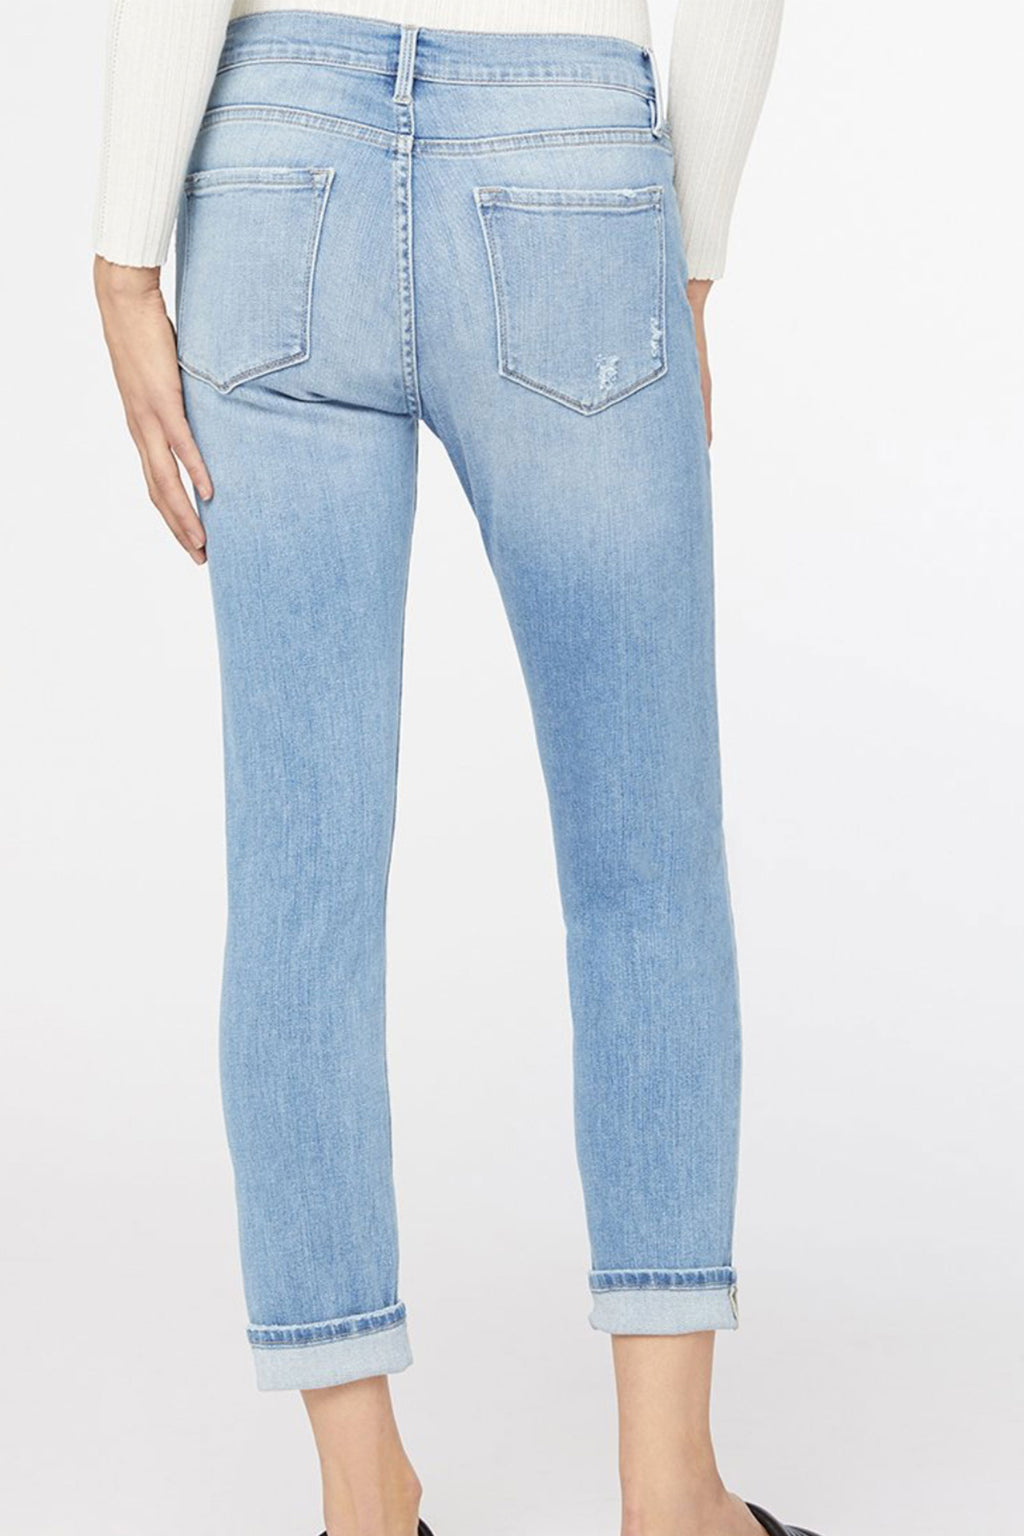 Frame Le Garcon Mid-Rise Straight Denim in Overturn